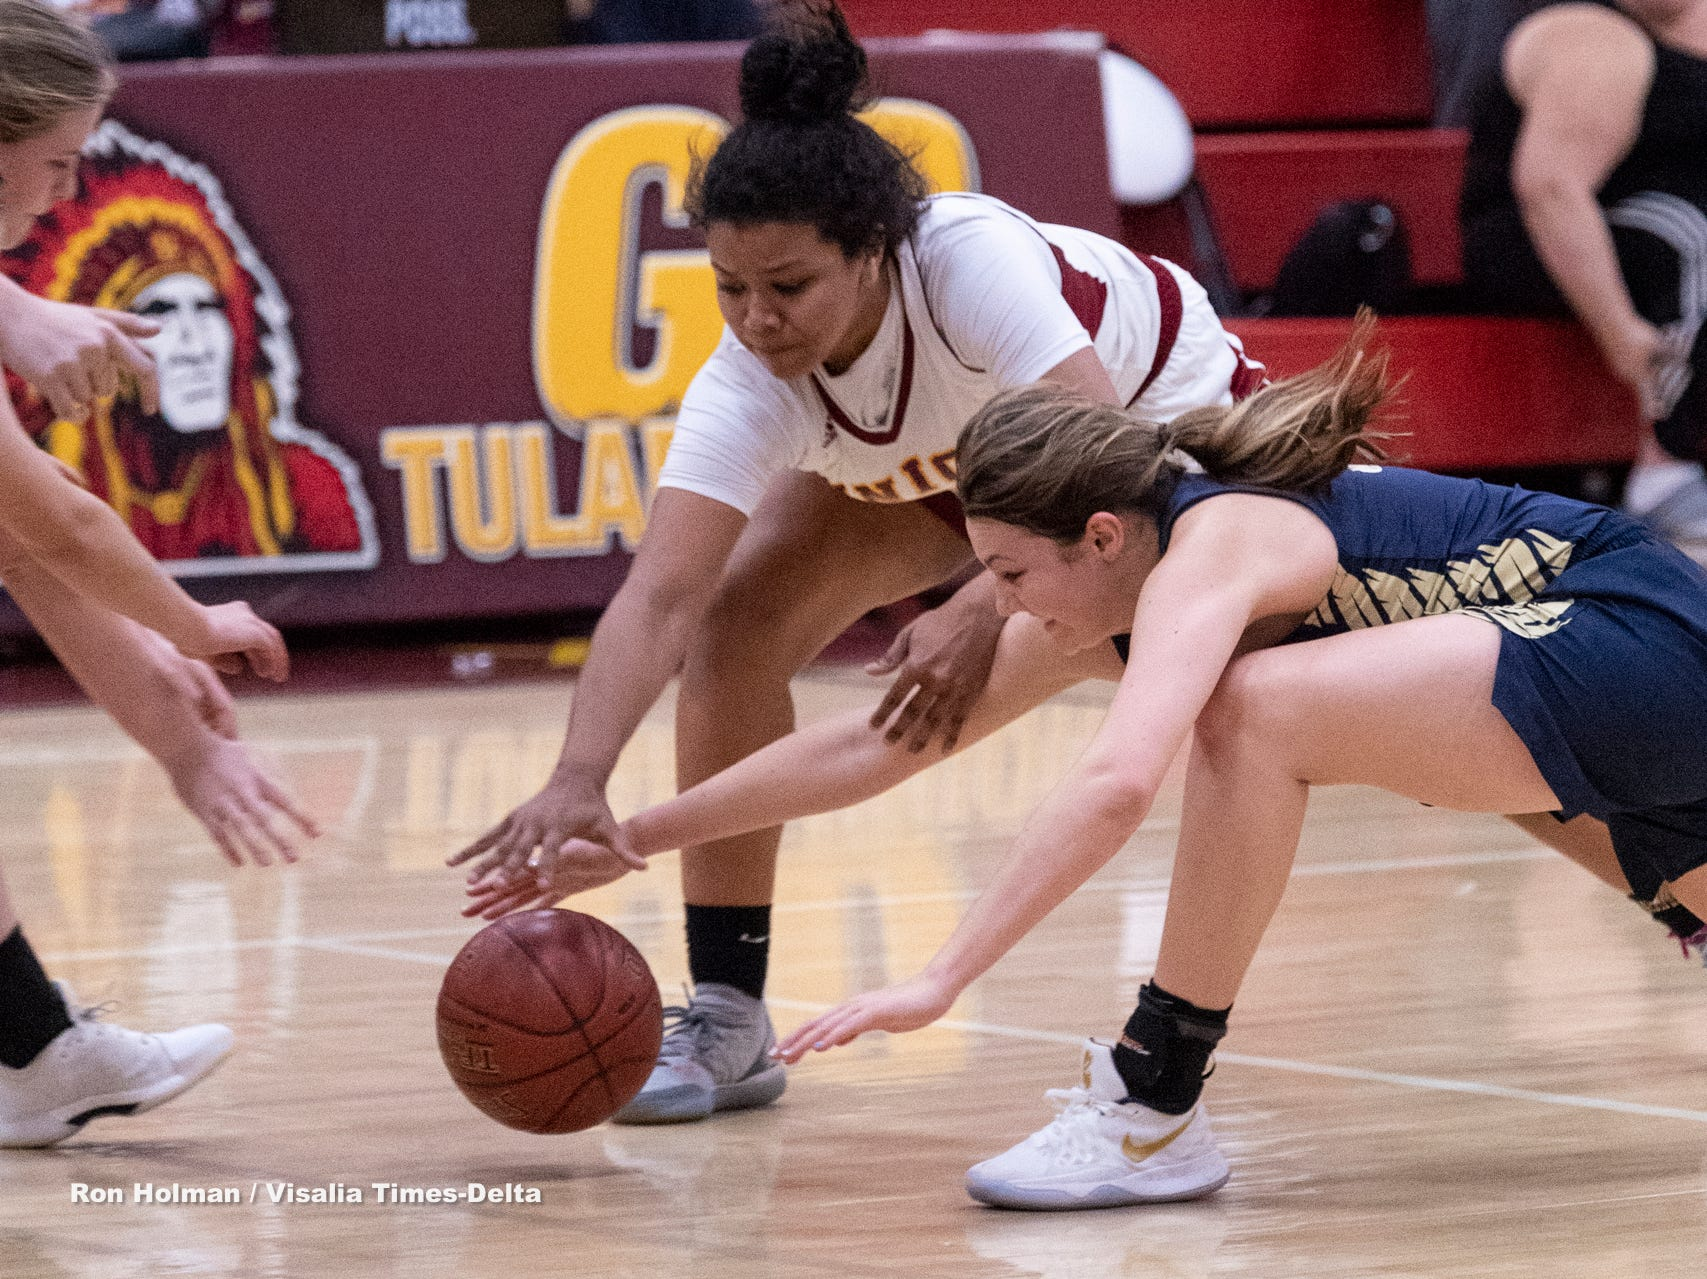 Tulare Union hosts Monache in a girls basketball game on Tuesday, January 22, 2019.